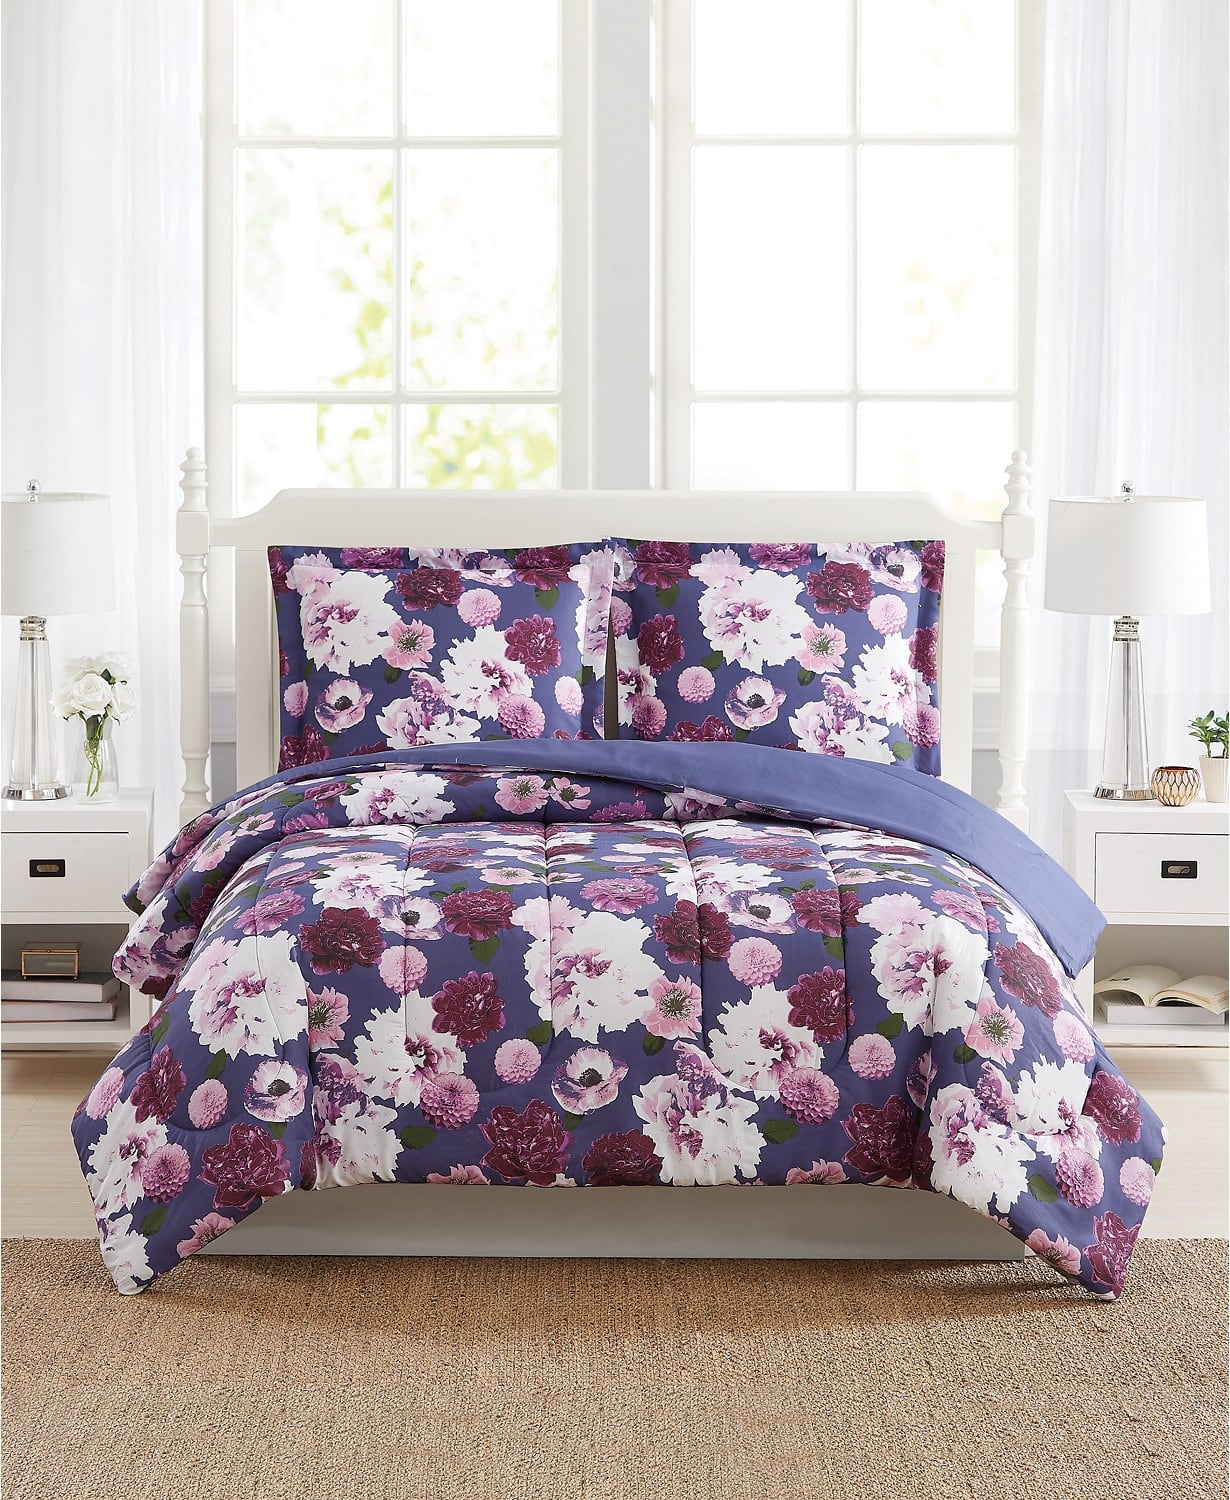 Pem America Twin or queen or king  2PC Comforter Set $19